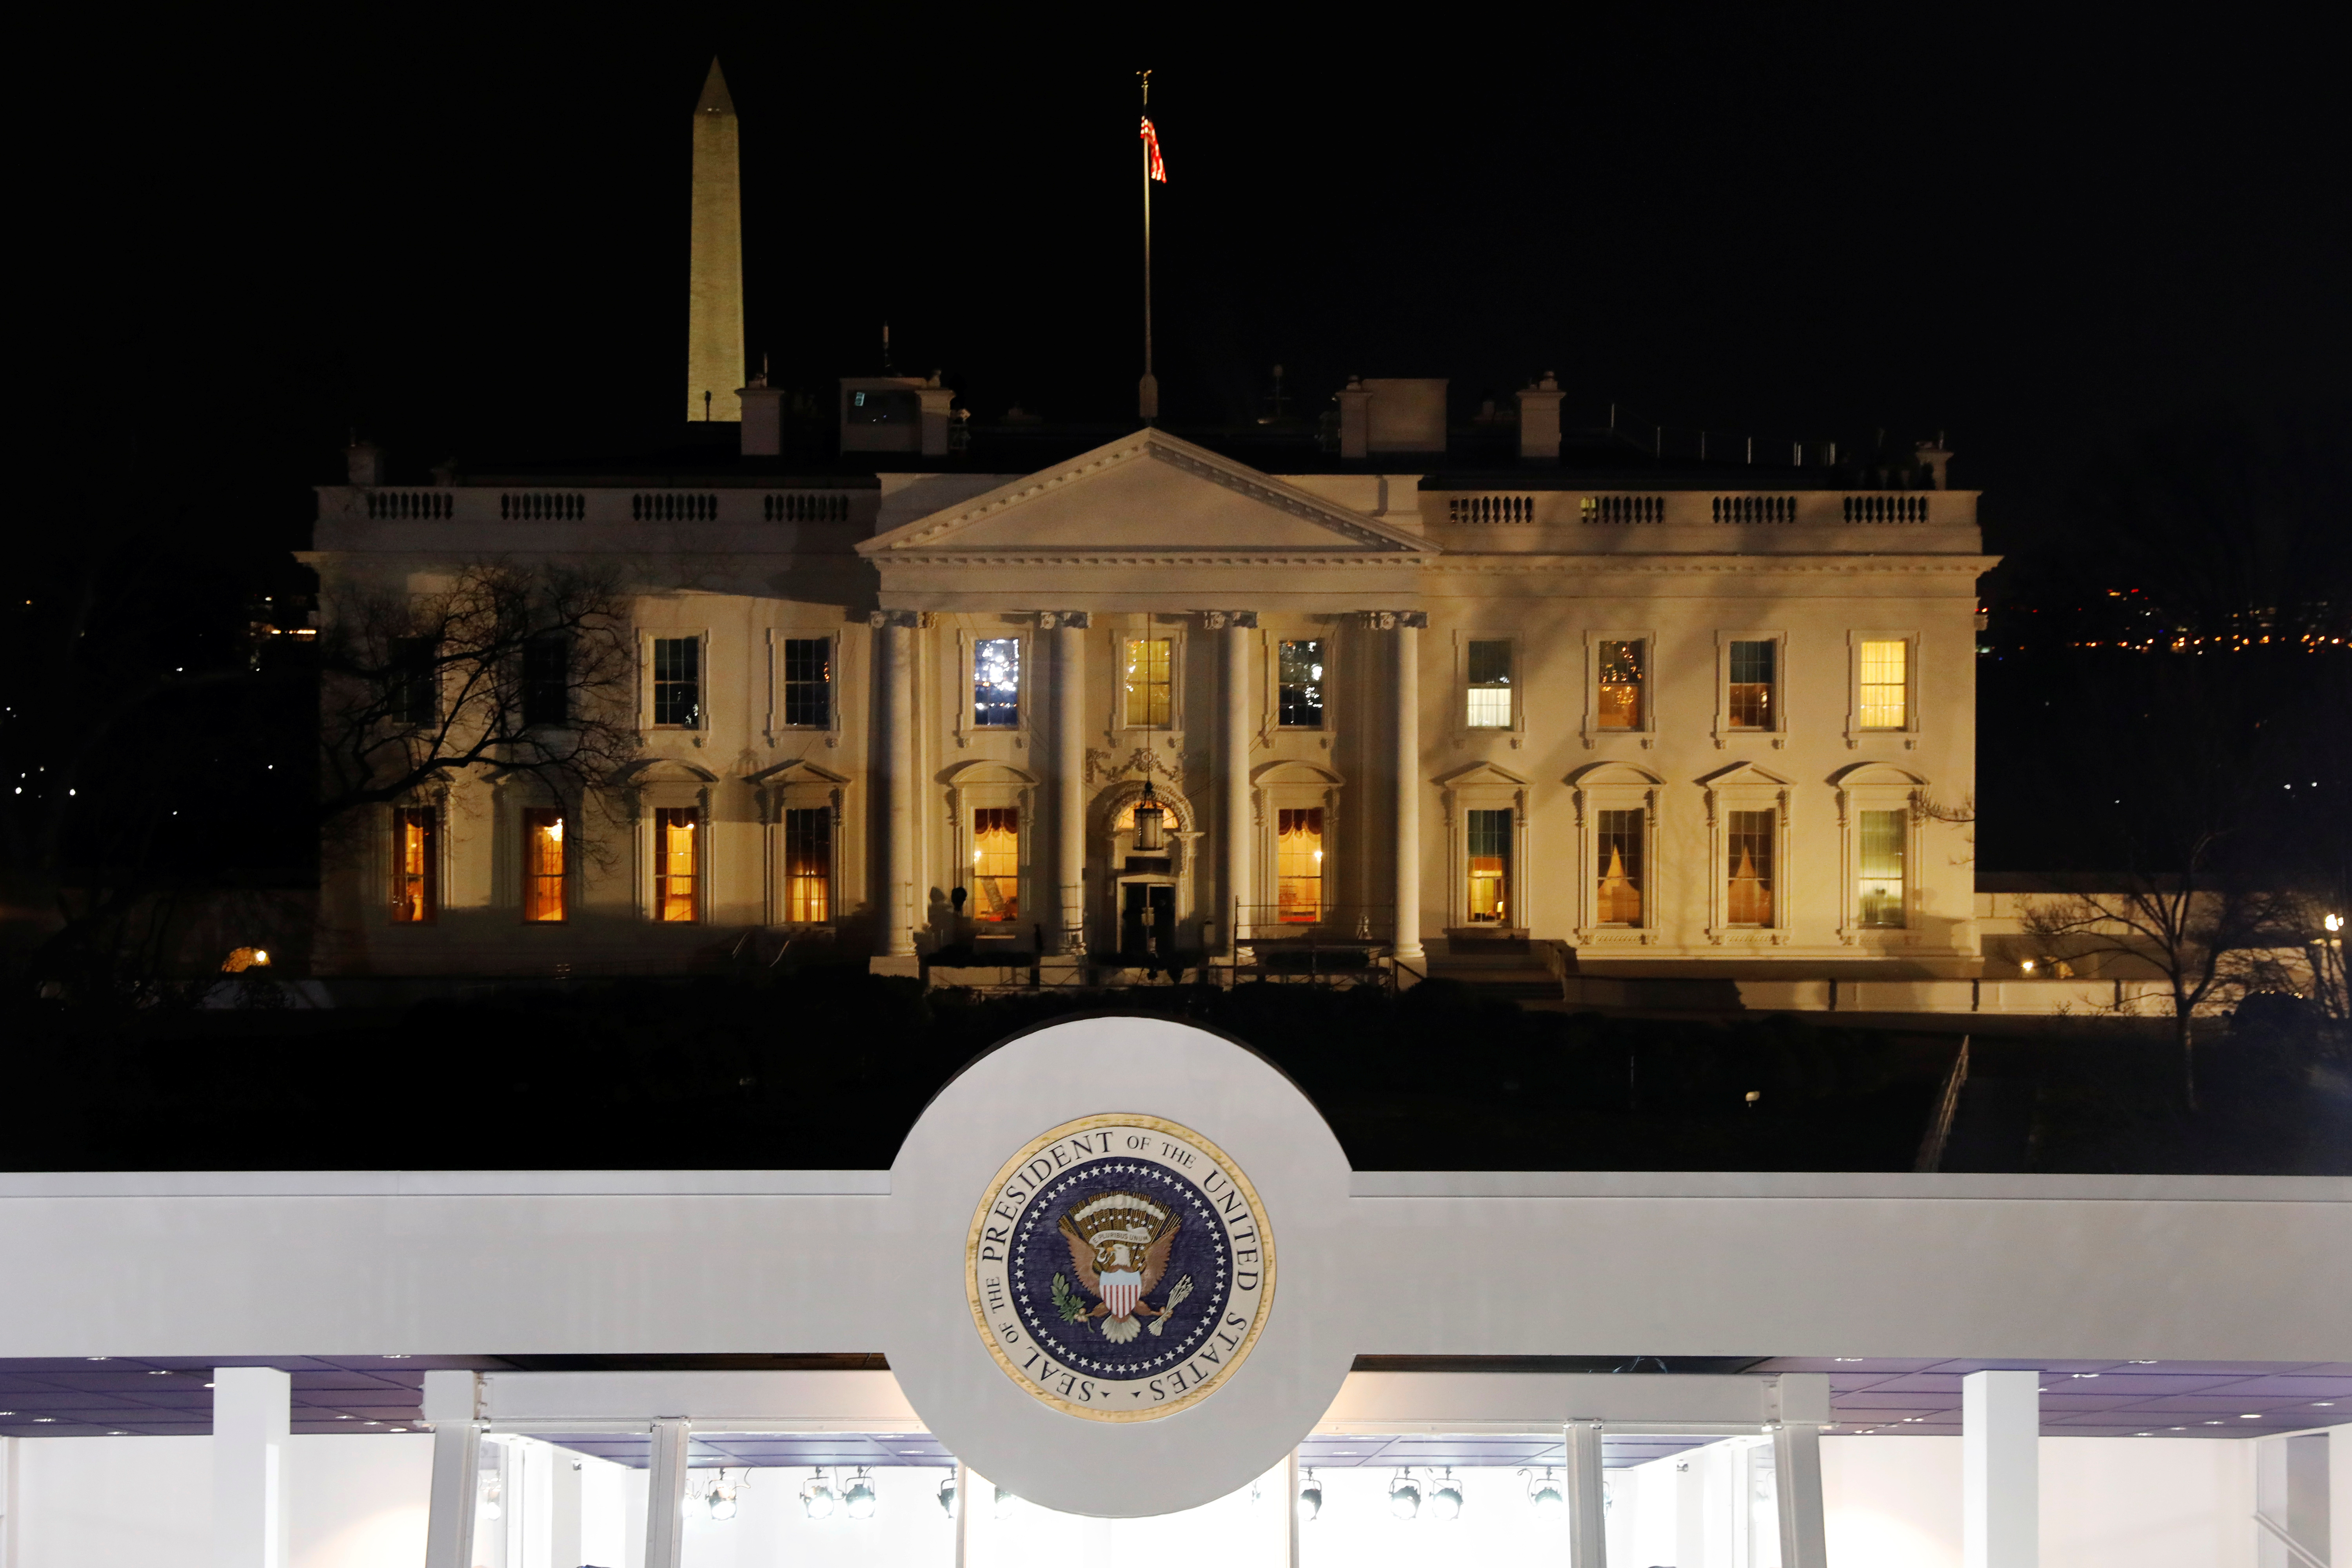 The presidential seal is seen in front of the White House on Pennsylvania Avenue in Washington, U.S., January 20, 2017.  REUTERS/Lucas Jackson